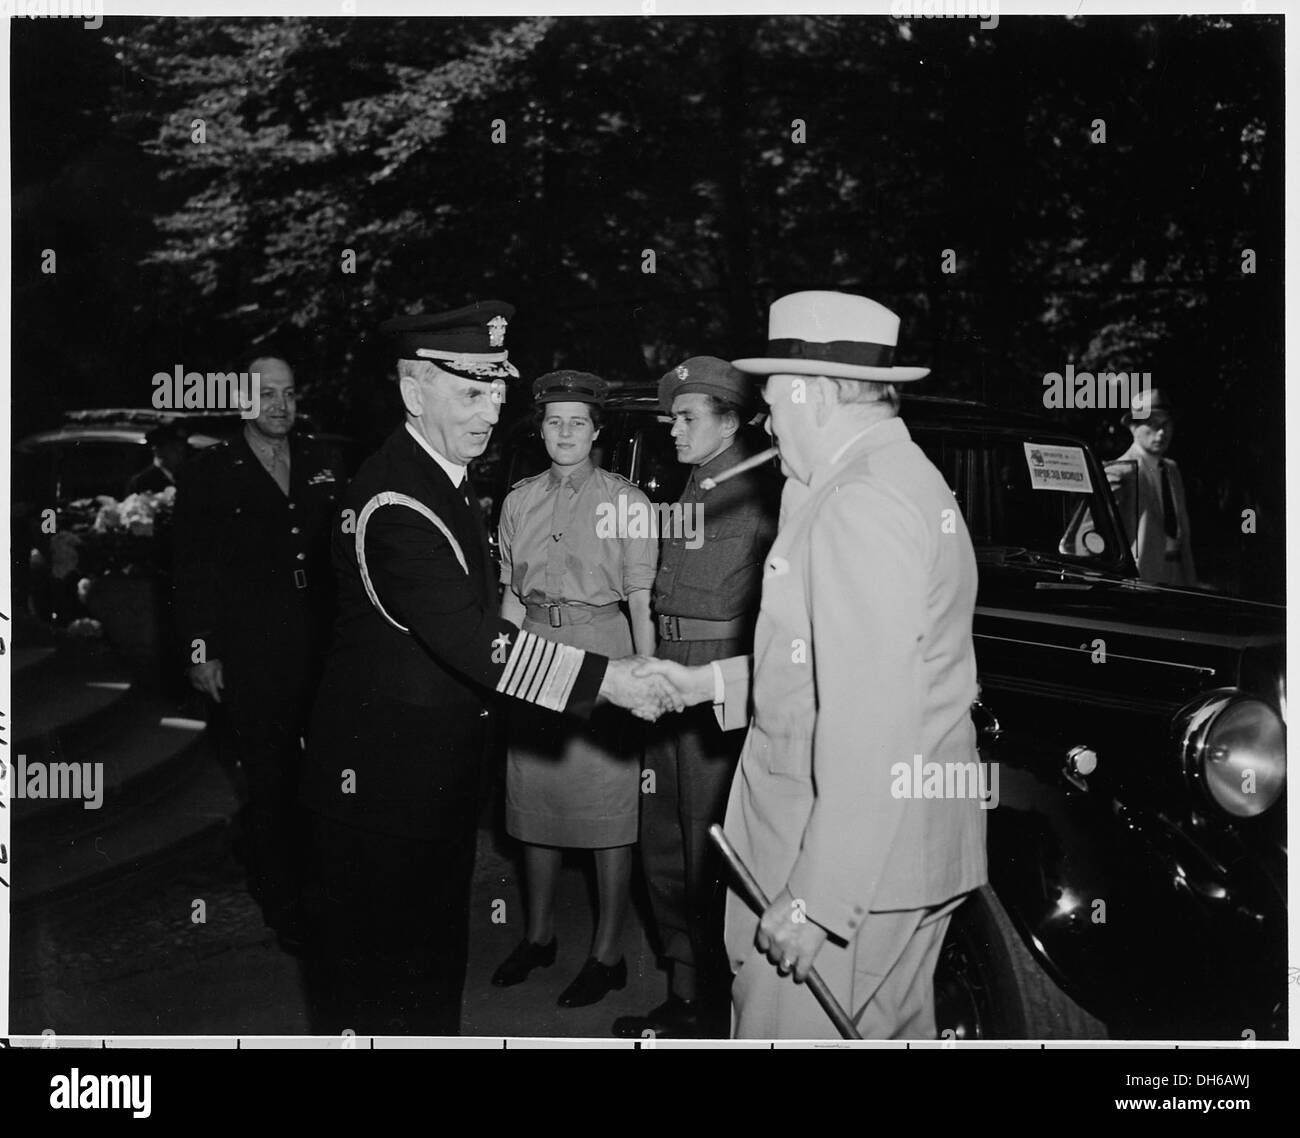 Fleet Admiral William Leahy greets Prime Minister Winston Churchill at the entrance to the Little White House ... Stock Photo